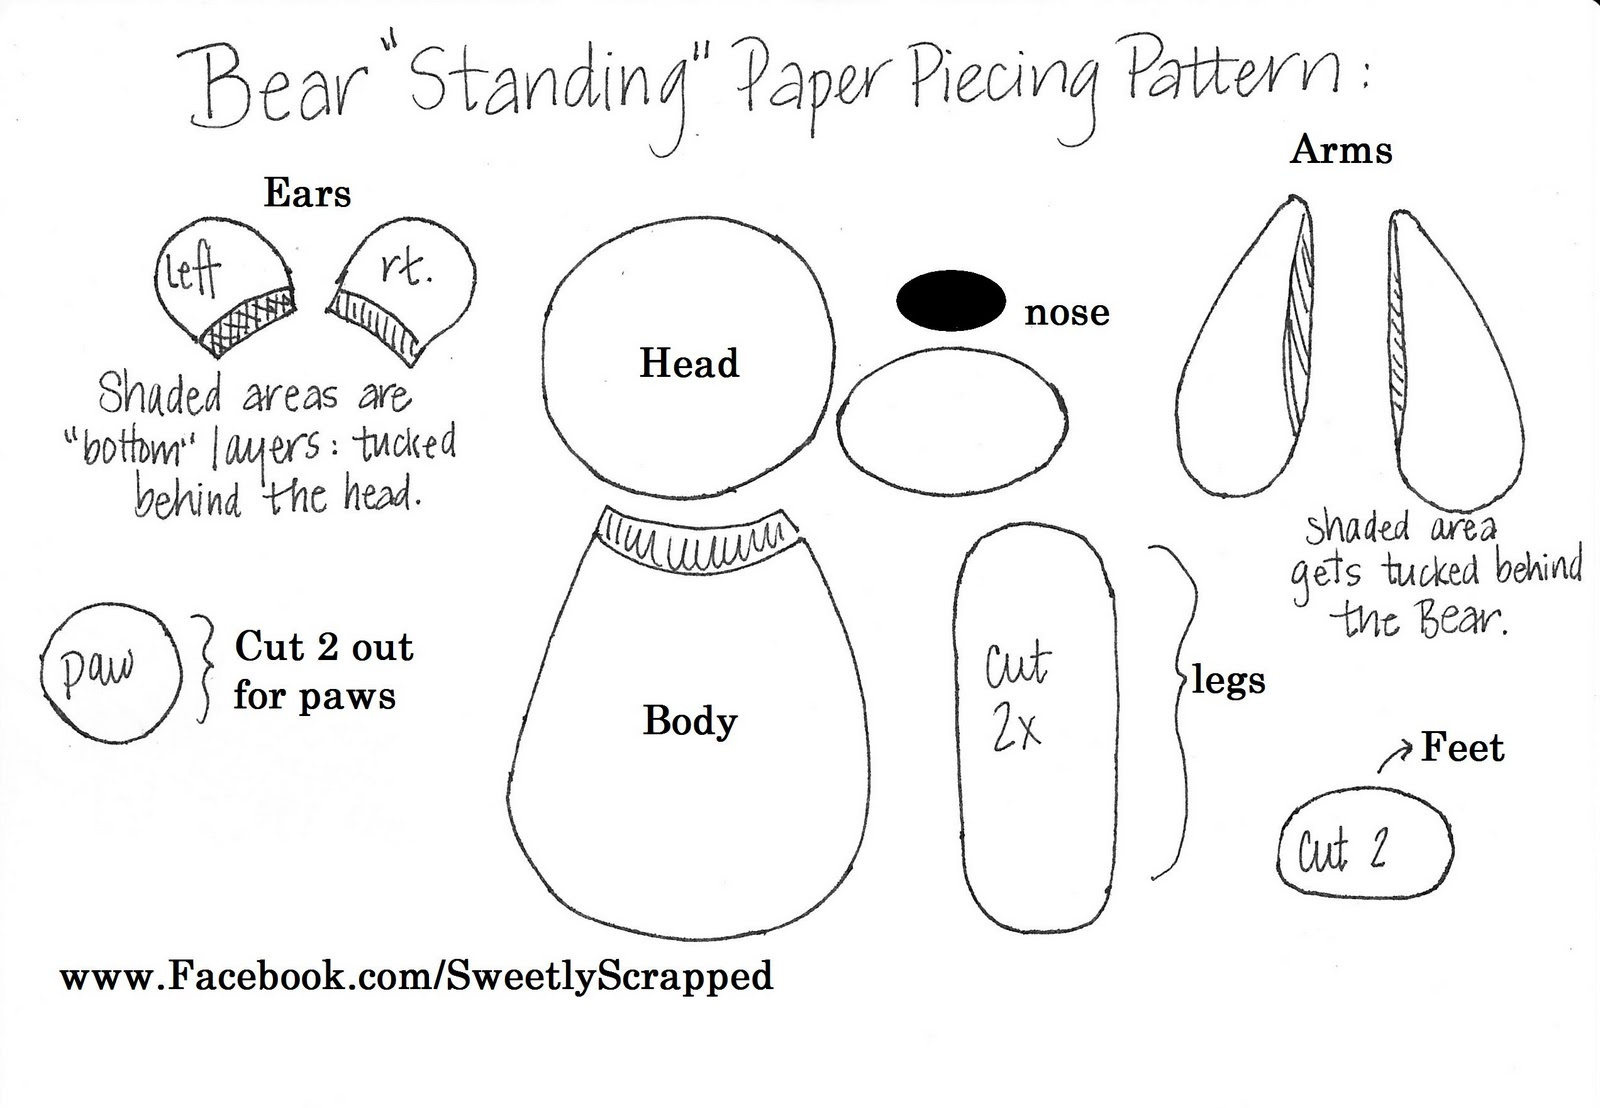 Sweetly Scrapped Bear Paper Piecing Pattern For You